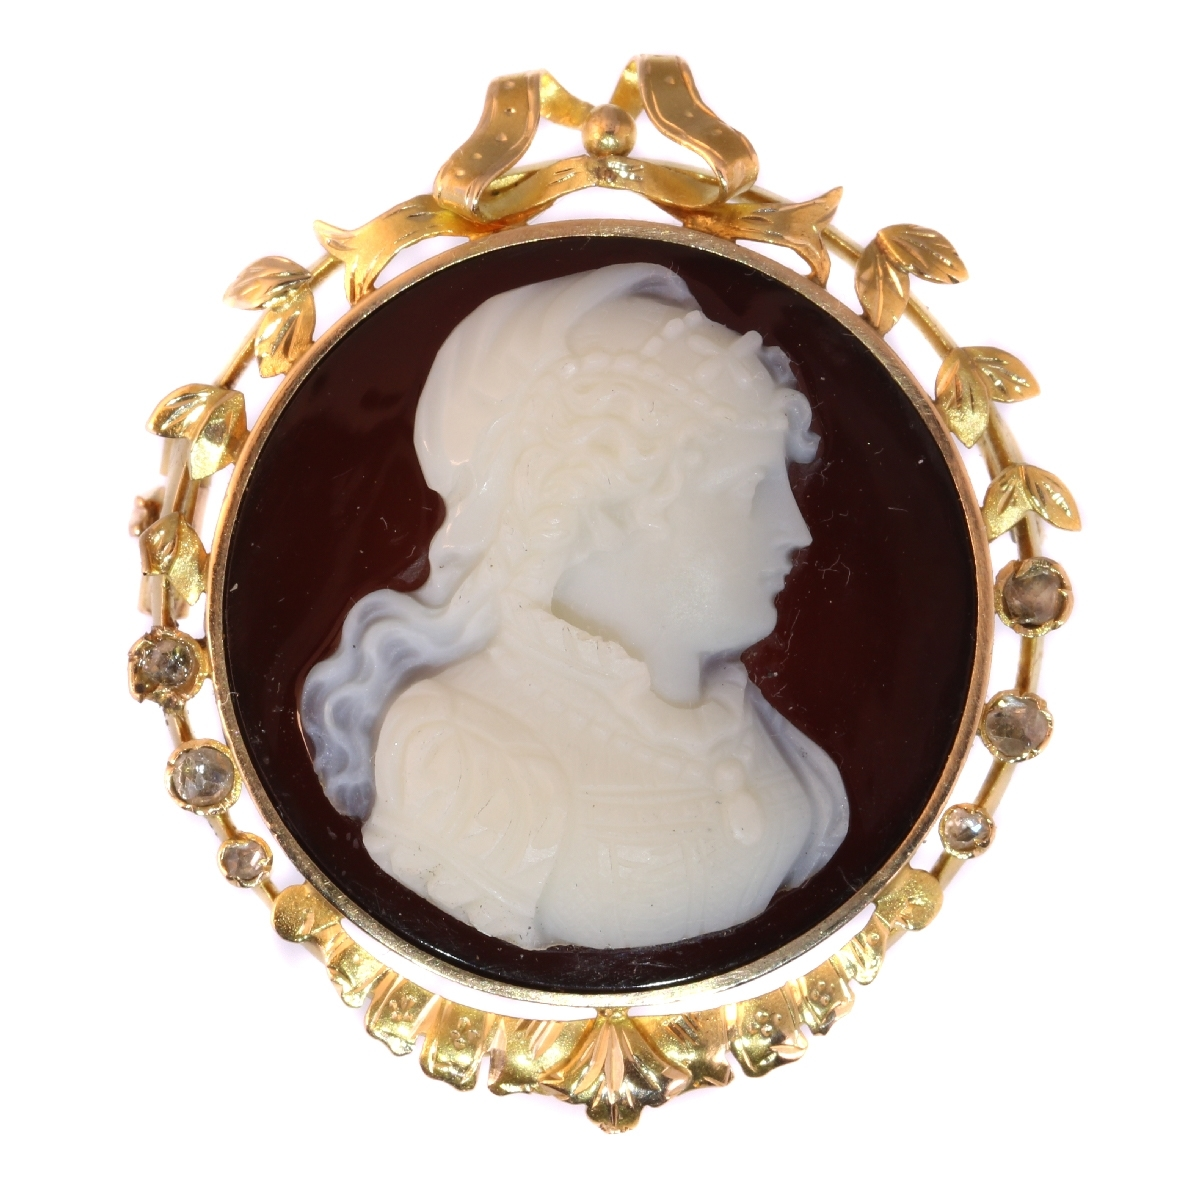 9ac20c53a Elegant Victorian antique stone cameo brooch with rose cut diamonds:  Description by Adin Antique Jewelry.